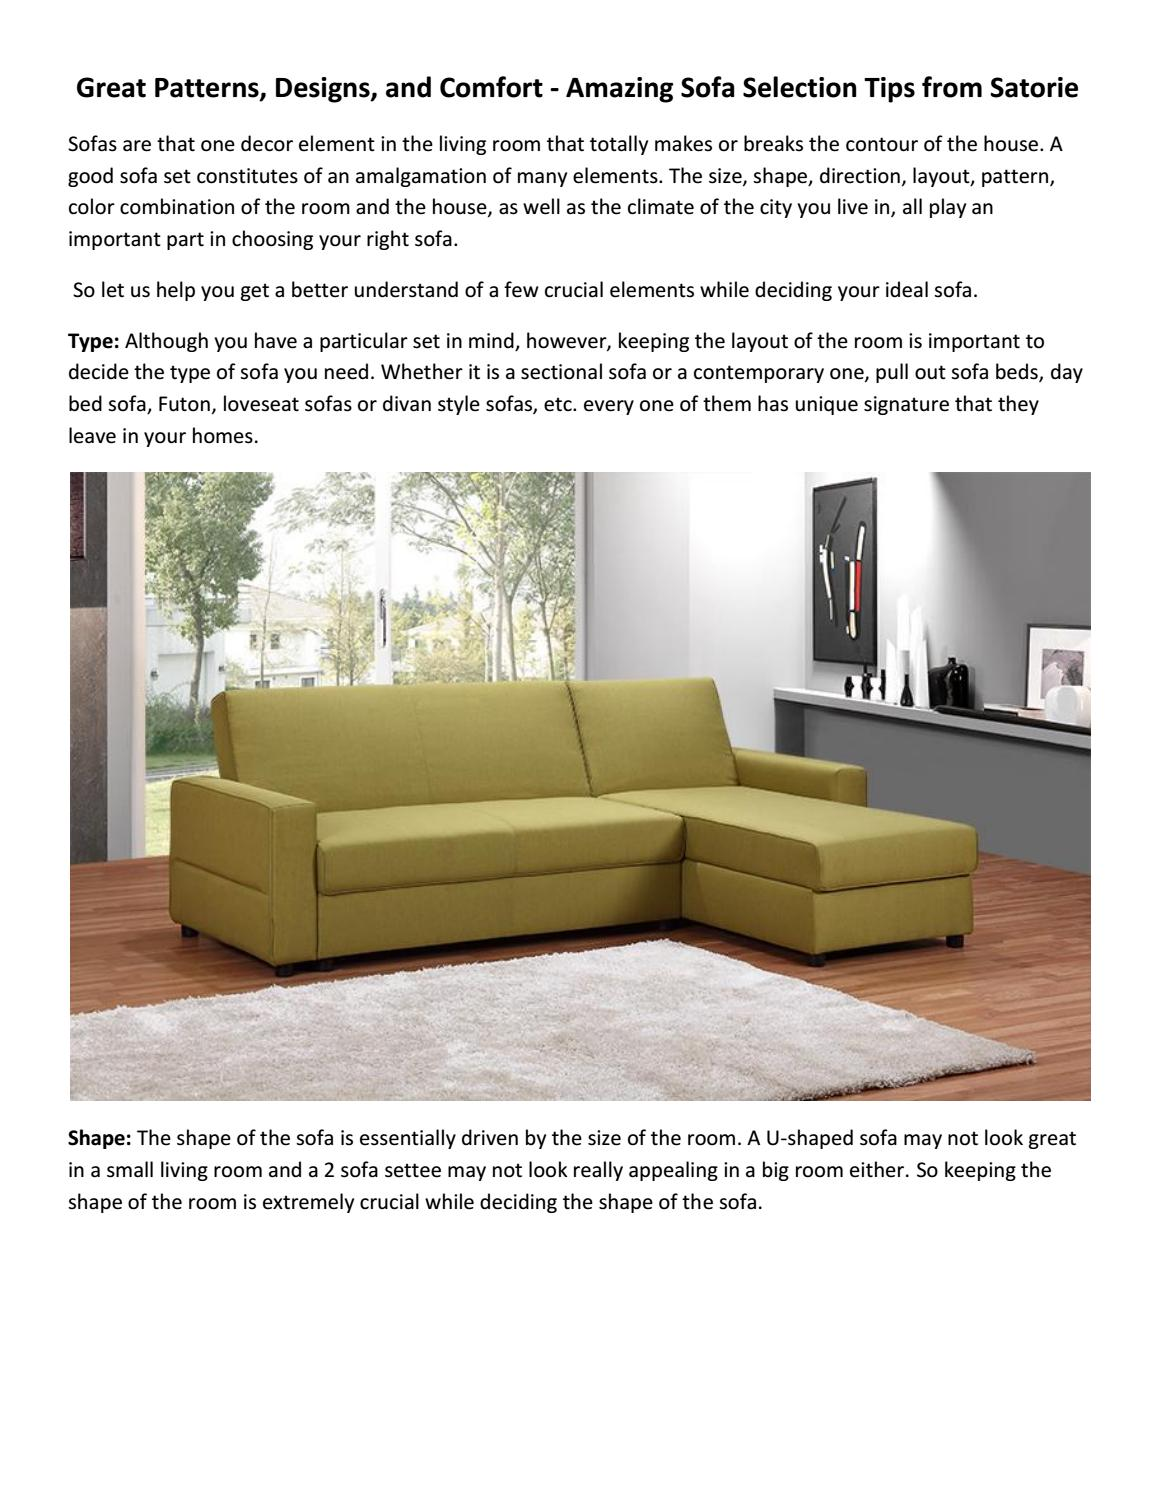 Remarkable Amazing Sofa Selection Tips From Satorie By Satorie Issuu Lamtechconsult Wood Chair Design Ideas Lamtechconsultcom